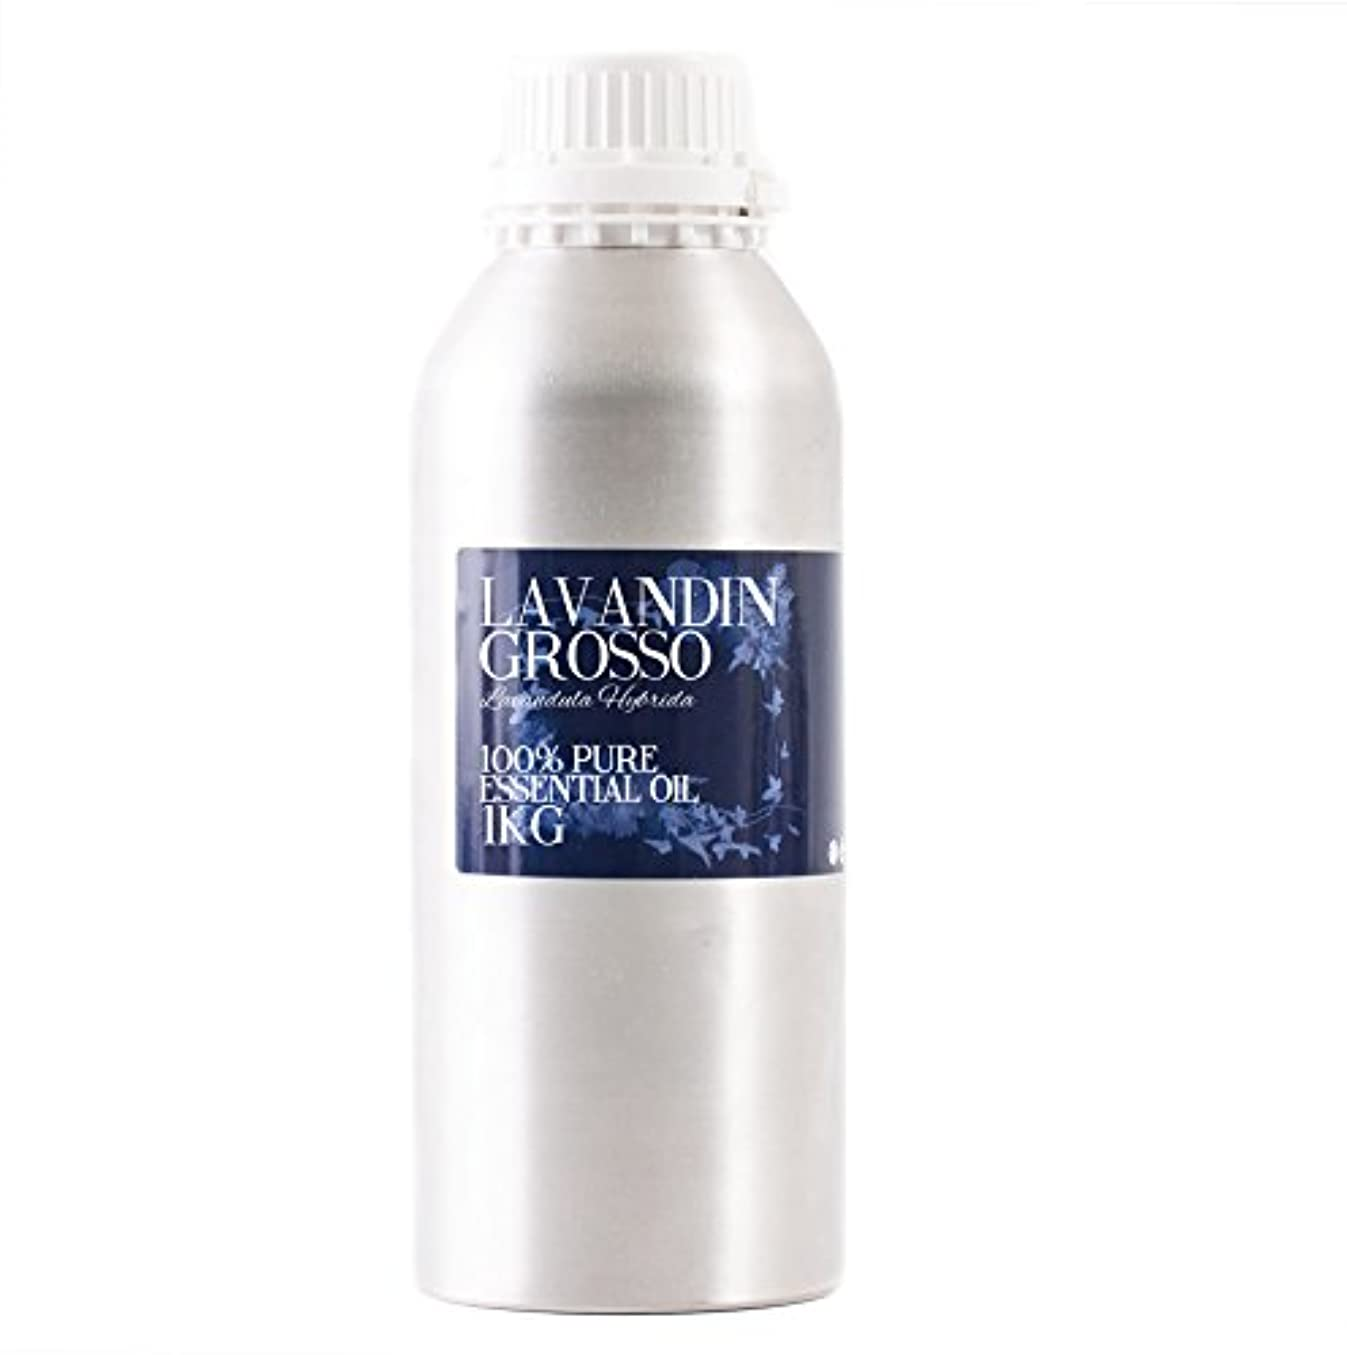 フラップペレットとは異なりMystic Moments | Lavandin Grosso Essential Oil - 1Kg - 100% Pure